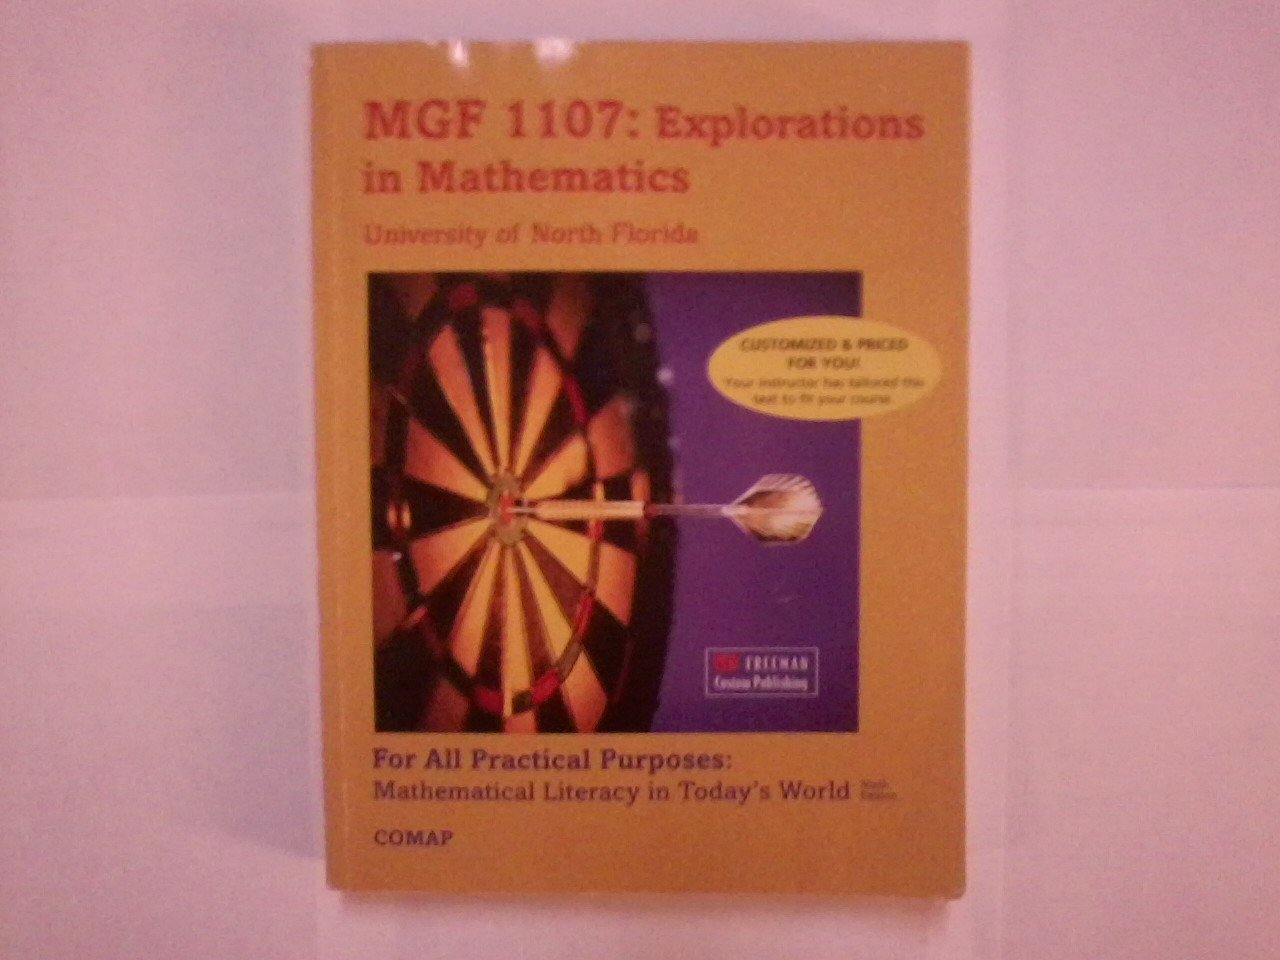 MGF 1107: Explorations in Mathematics/ For All Practical Purposes: Mathematical Literacy in Todays World, 9th Edition, University of North Florida ebook